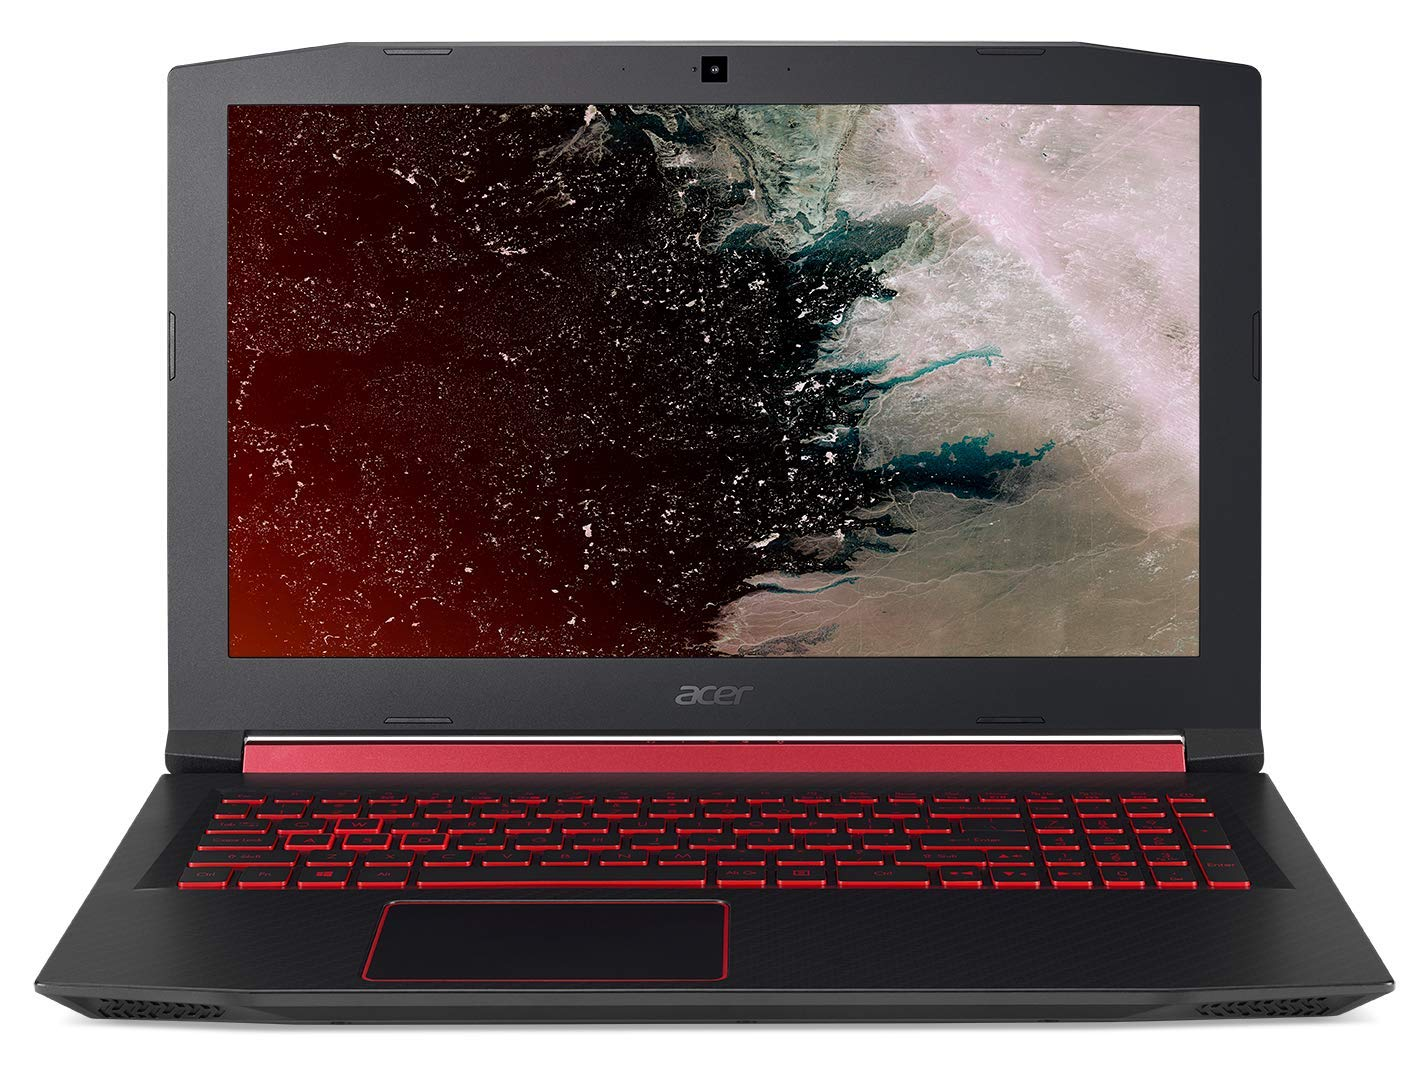 Acer Nitro 5 Gaming Laptop, Intel® Core™ i7, 16GB